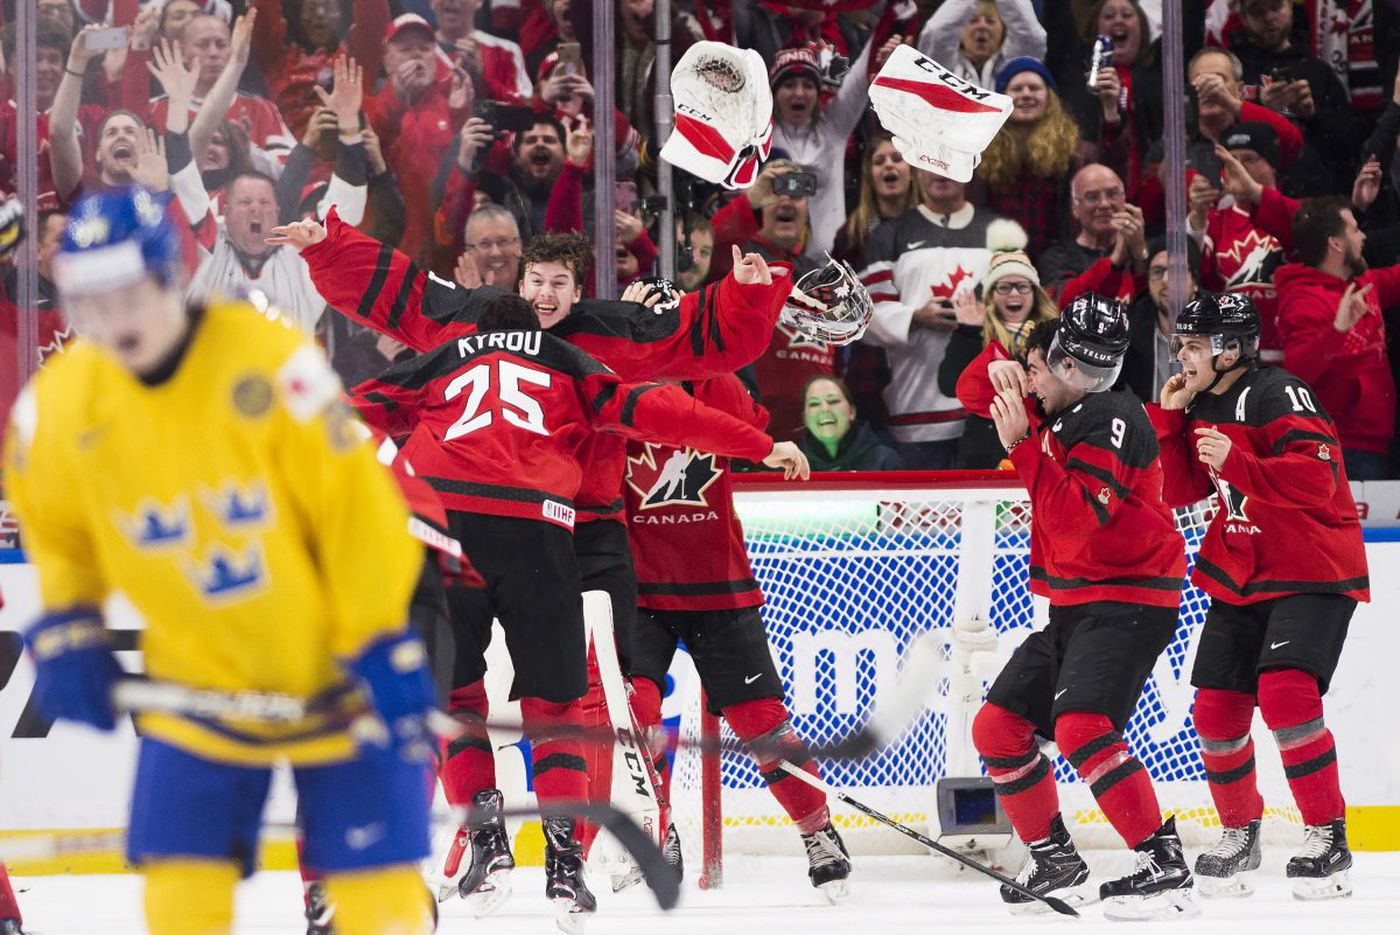 Catching up with Flyers prospect Carter Hart who just led Canada to a rousing gold medal